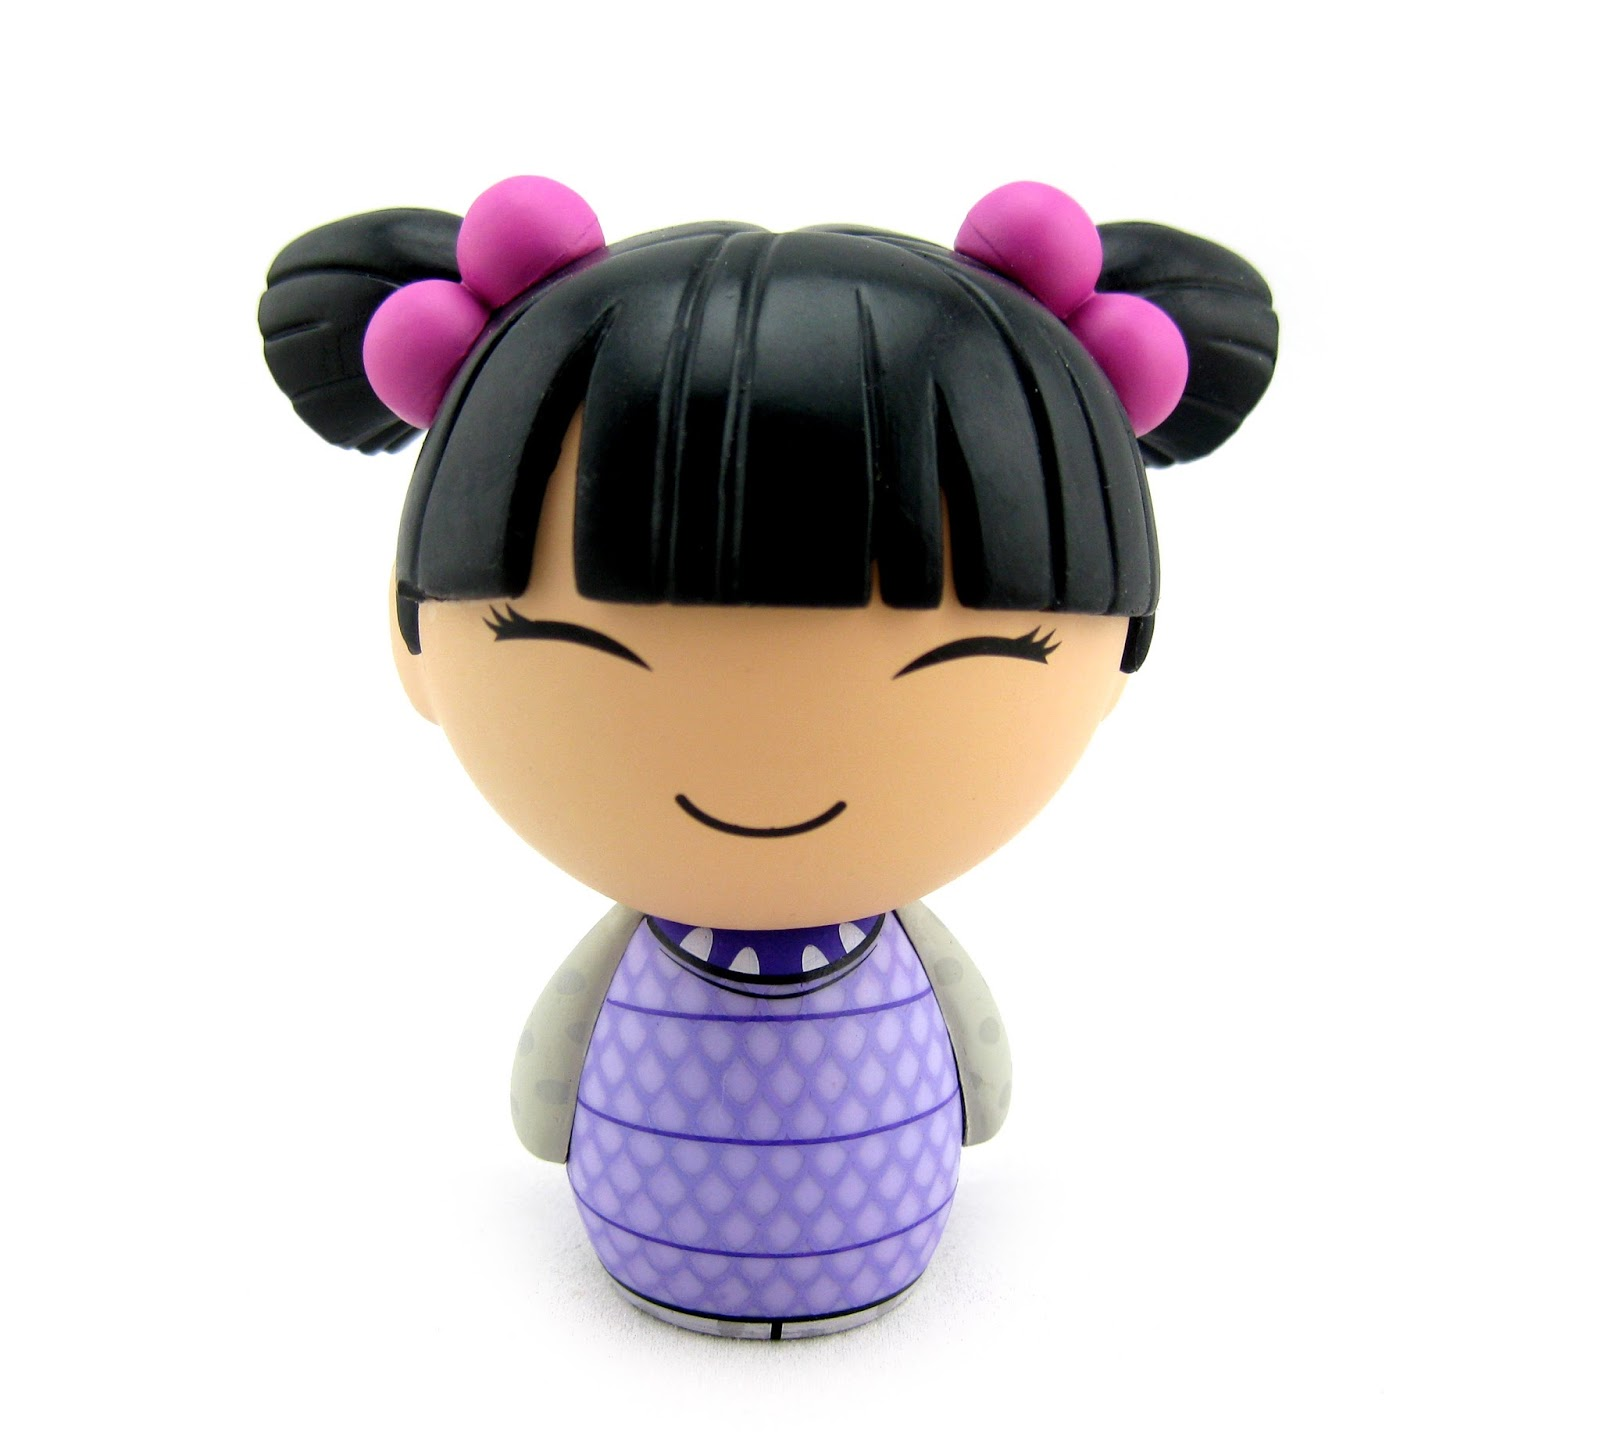 Uncategorized Monsters Inc Boo dan the pixar fan monsters inc boo in monster costume dorbz gamestop exclusive dorbz